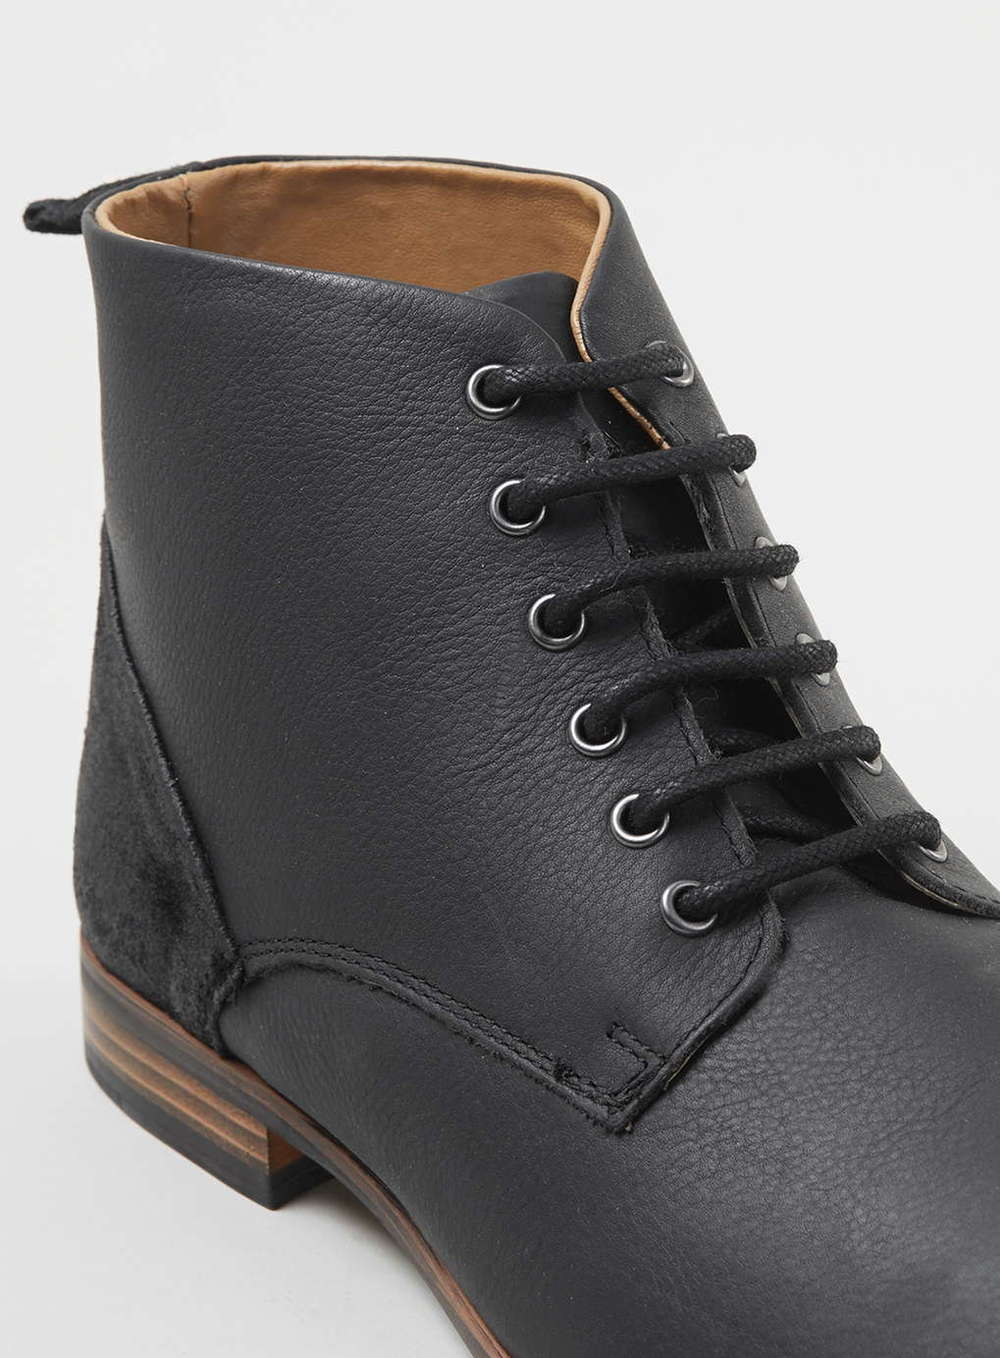 Topman Black Leather Boots